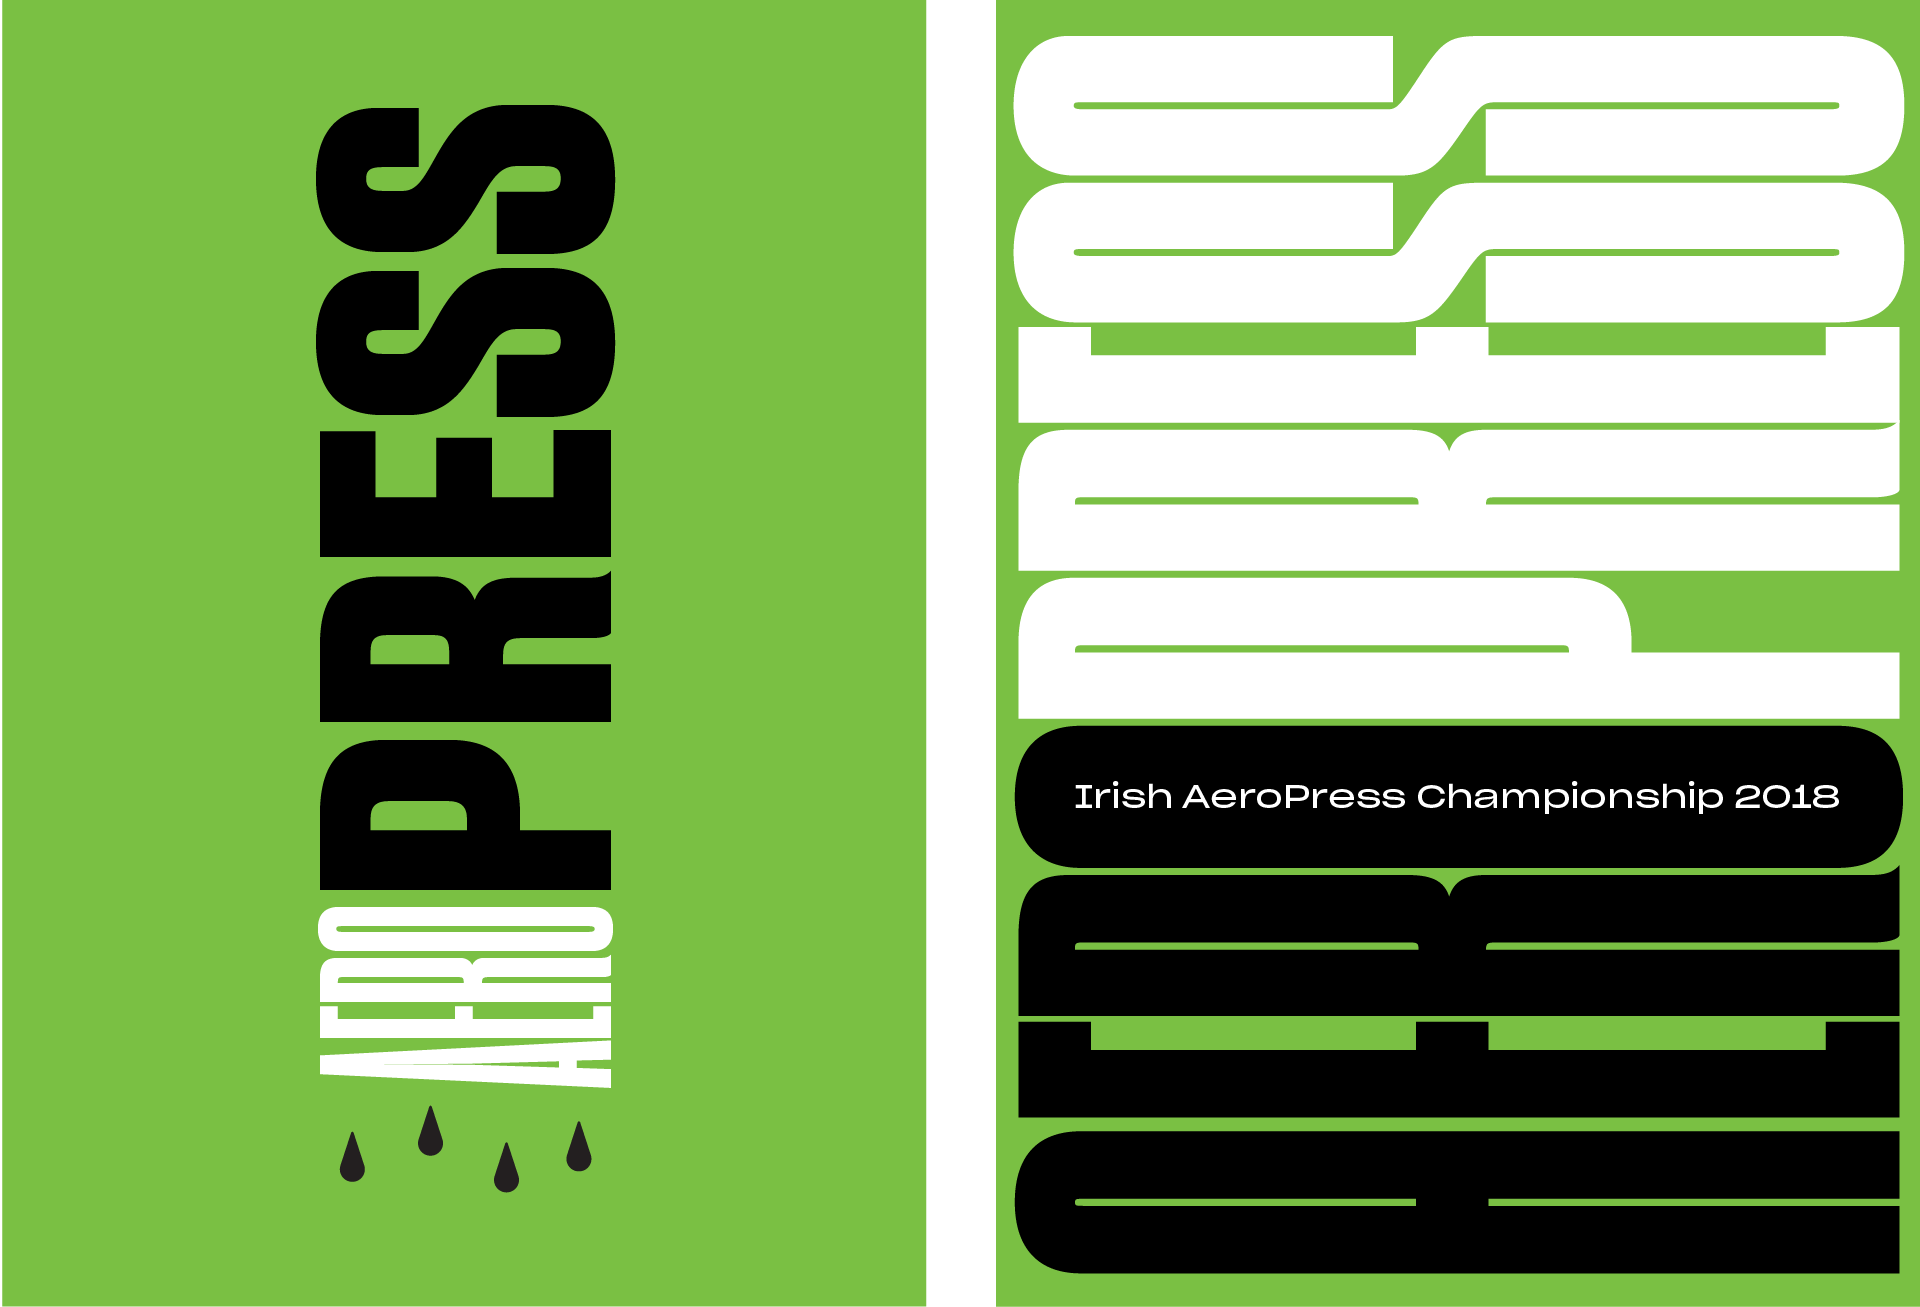 workgroup-aeropress-poster-02-iterations.png#asset:30181